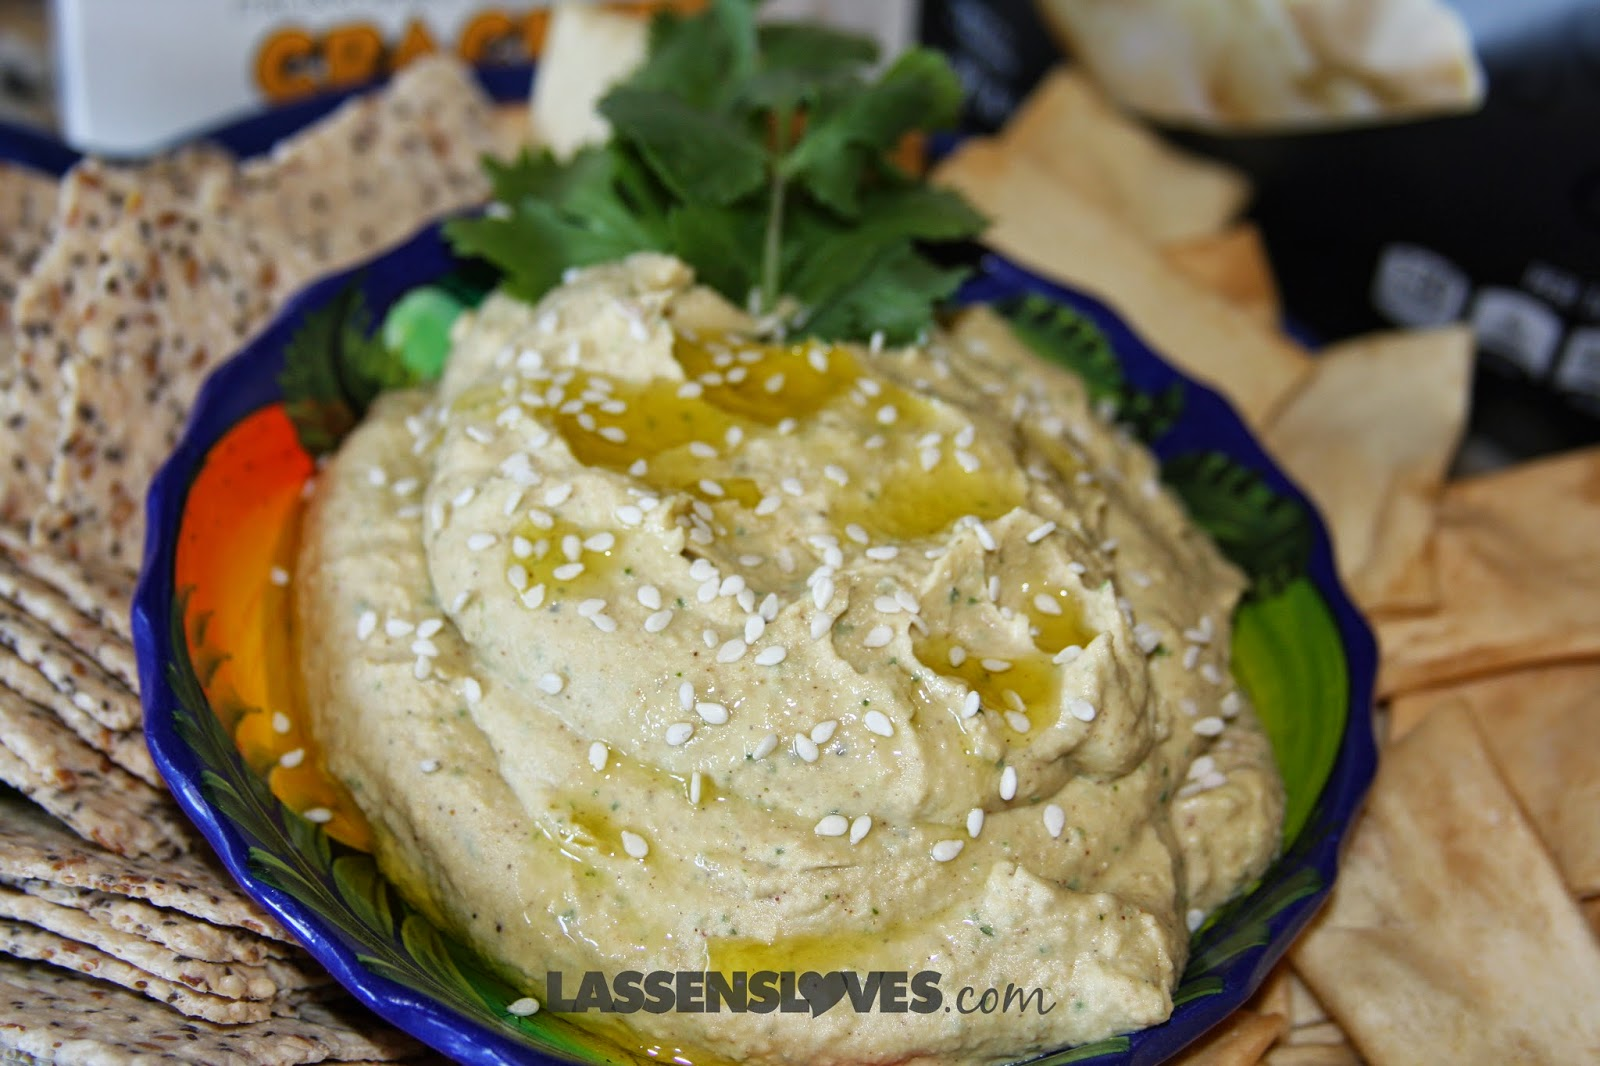 homemade+hummus, hummus+recipe